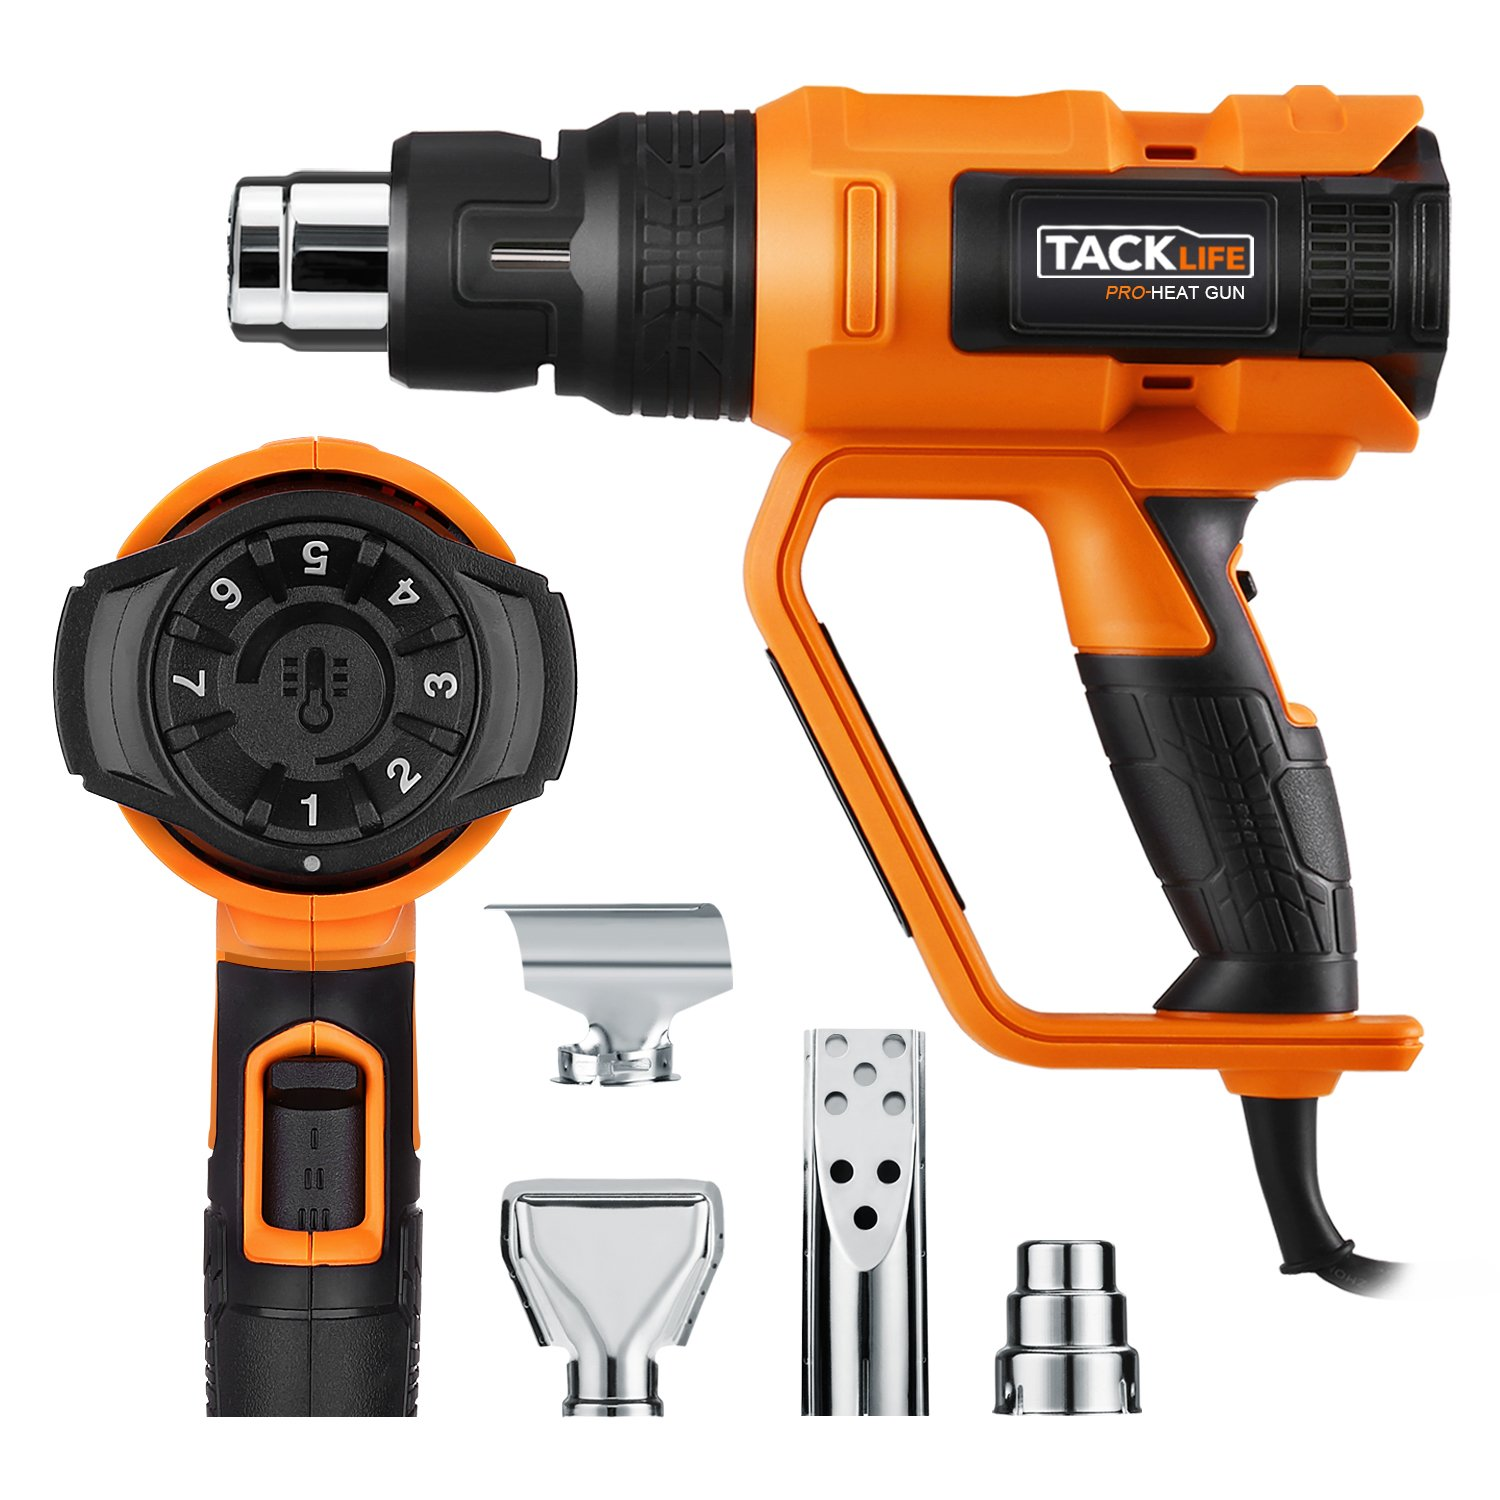 Tacklife HGP73AC Heat Gun 1600W 122℉~1112℉(50℃~600℃) Precision Control Temperature by Adjustment Dial with Three Temp-settings, Four Nozzle Attachments for Removing Paint, Bending Pipes, Shrinking PVC